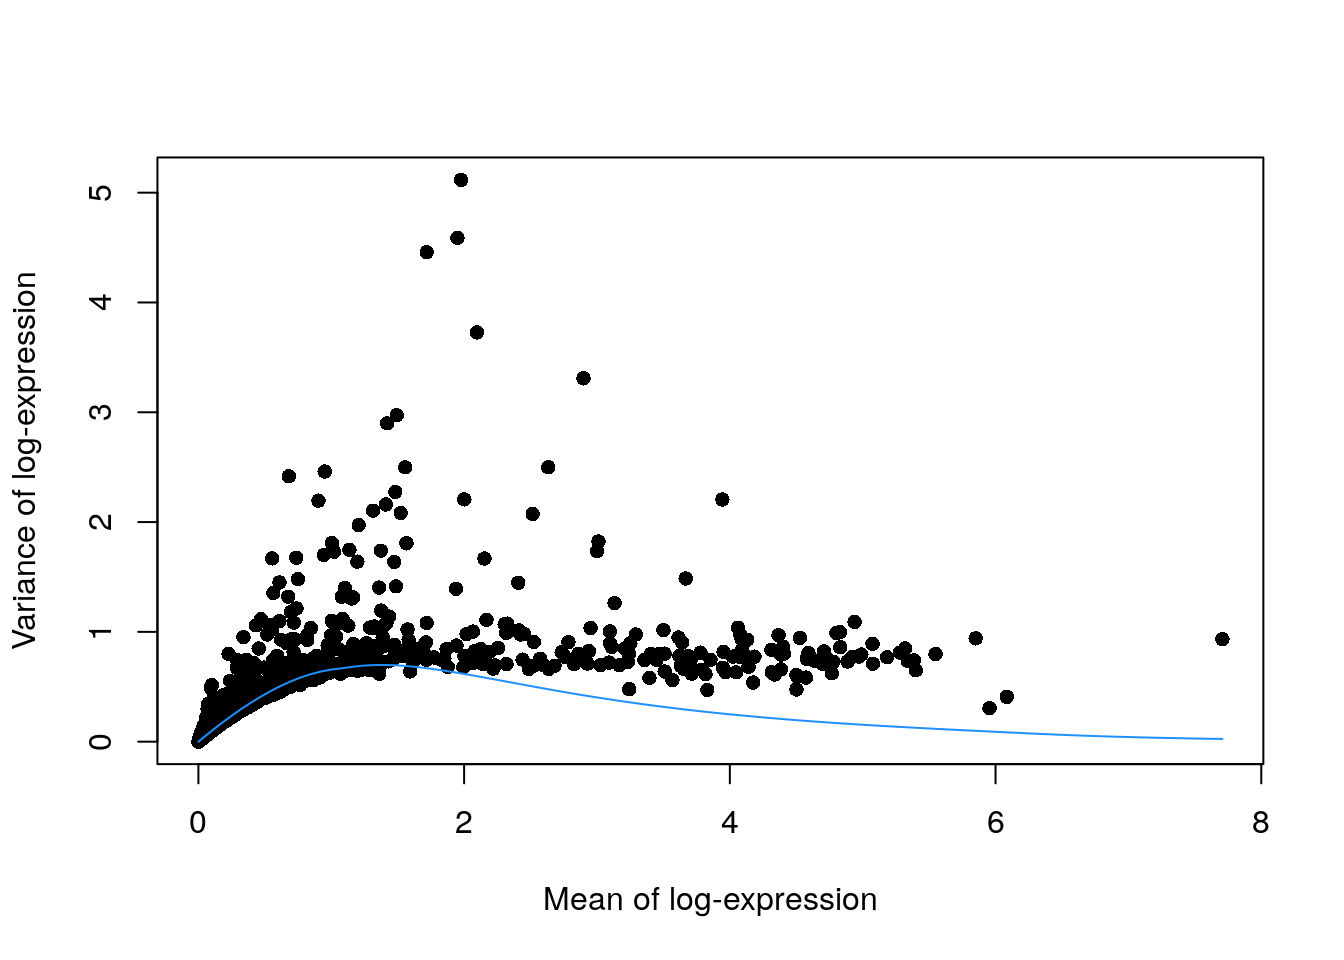 Variance of normalized log-expression values for each gene in the PBMC dataset, plotted against the mean log-expression. The blue line represents represents the mean-variance relationship corresponding to Poisson noise.